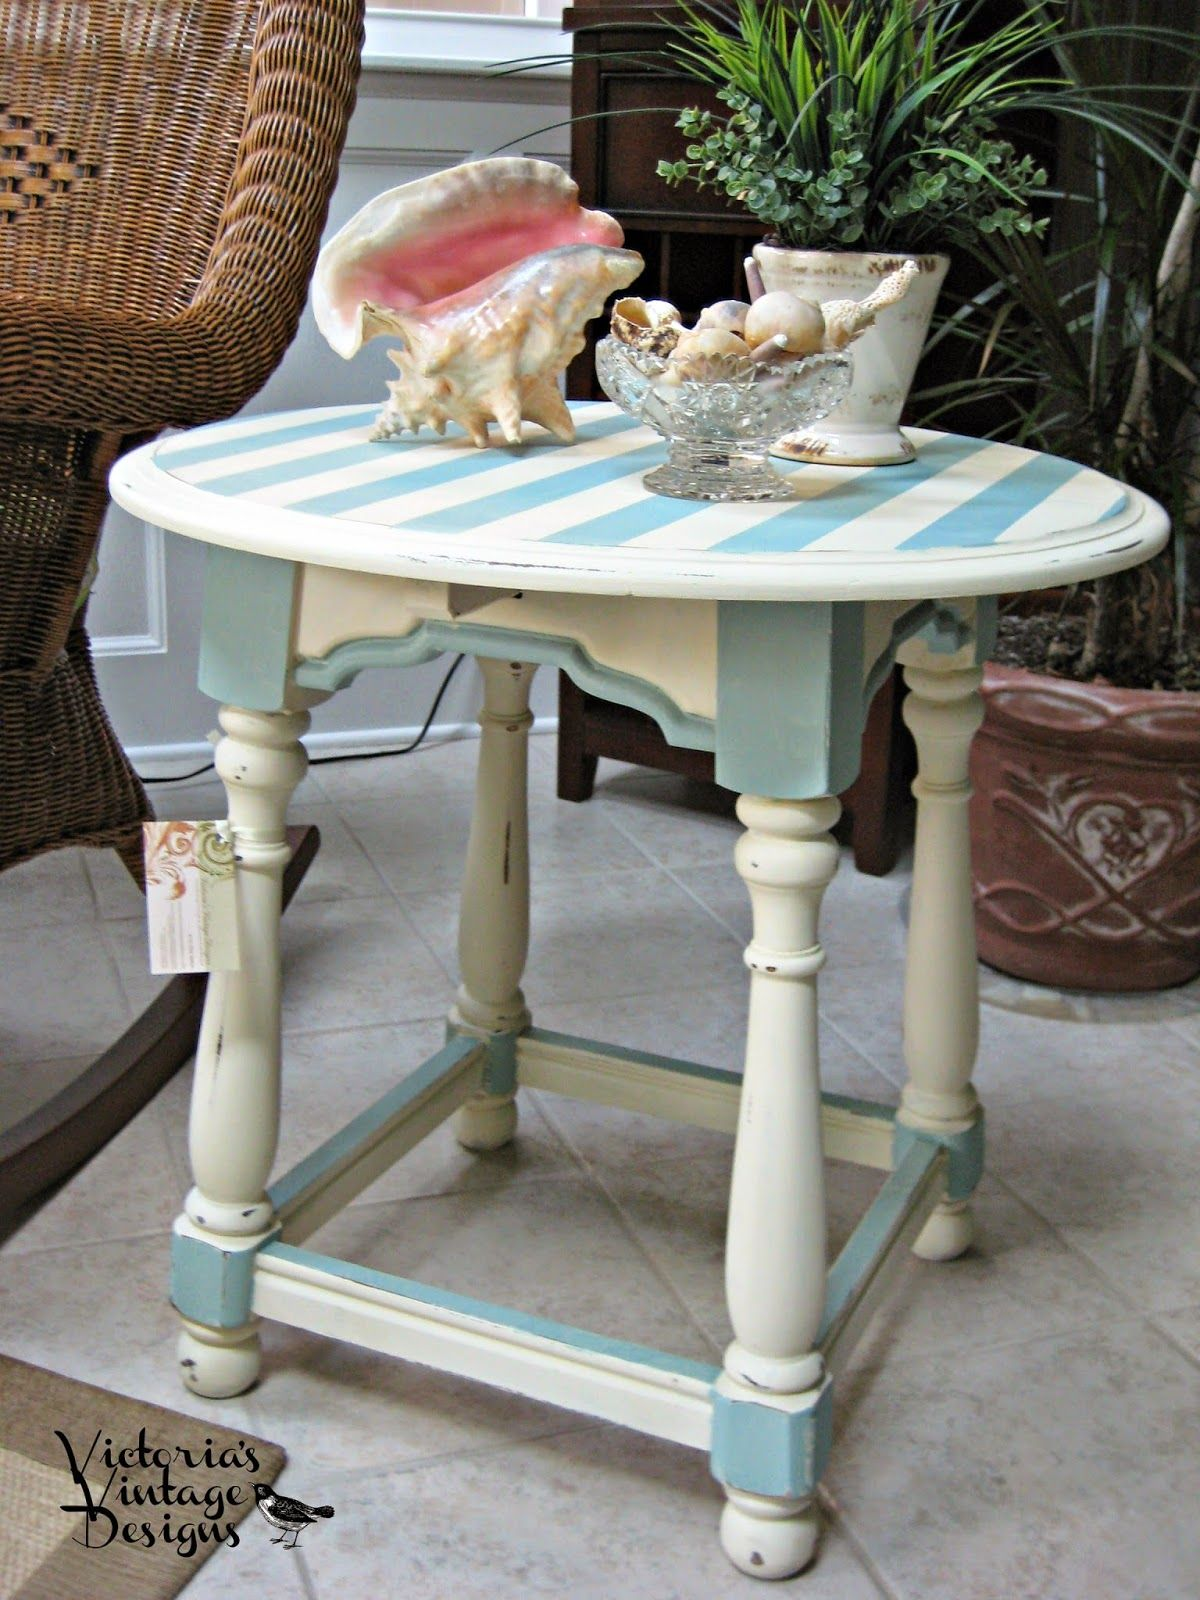 Victoria S Vintage Designs Hand Painted Beachy Round End Table Painted Side Tables Funky Furniture Furniture Trim